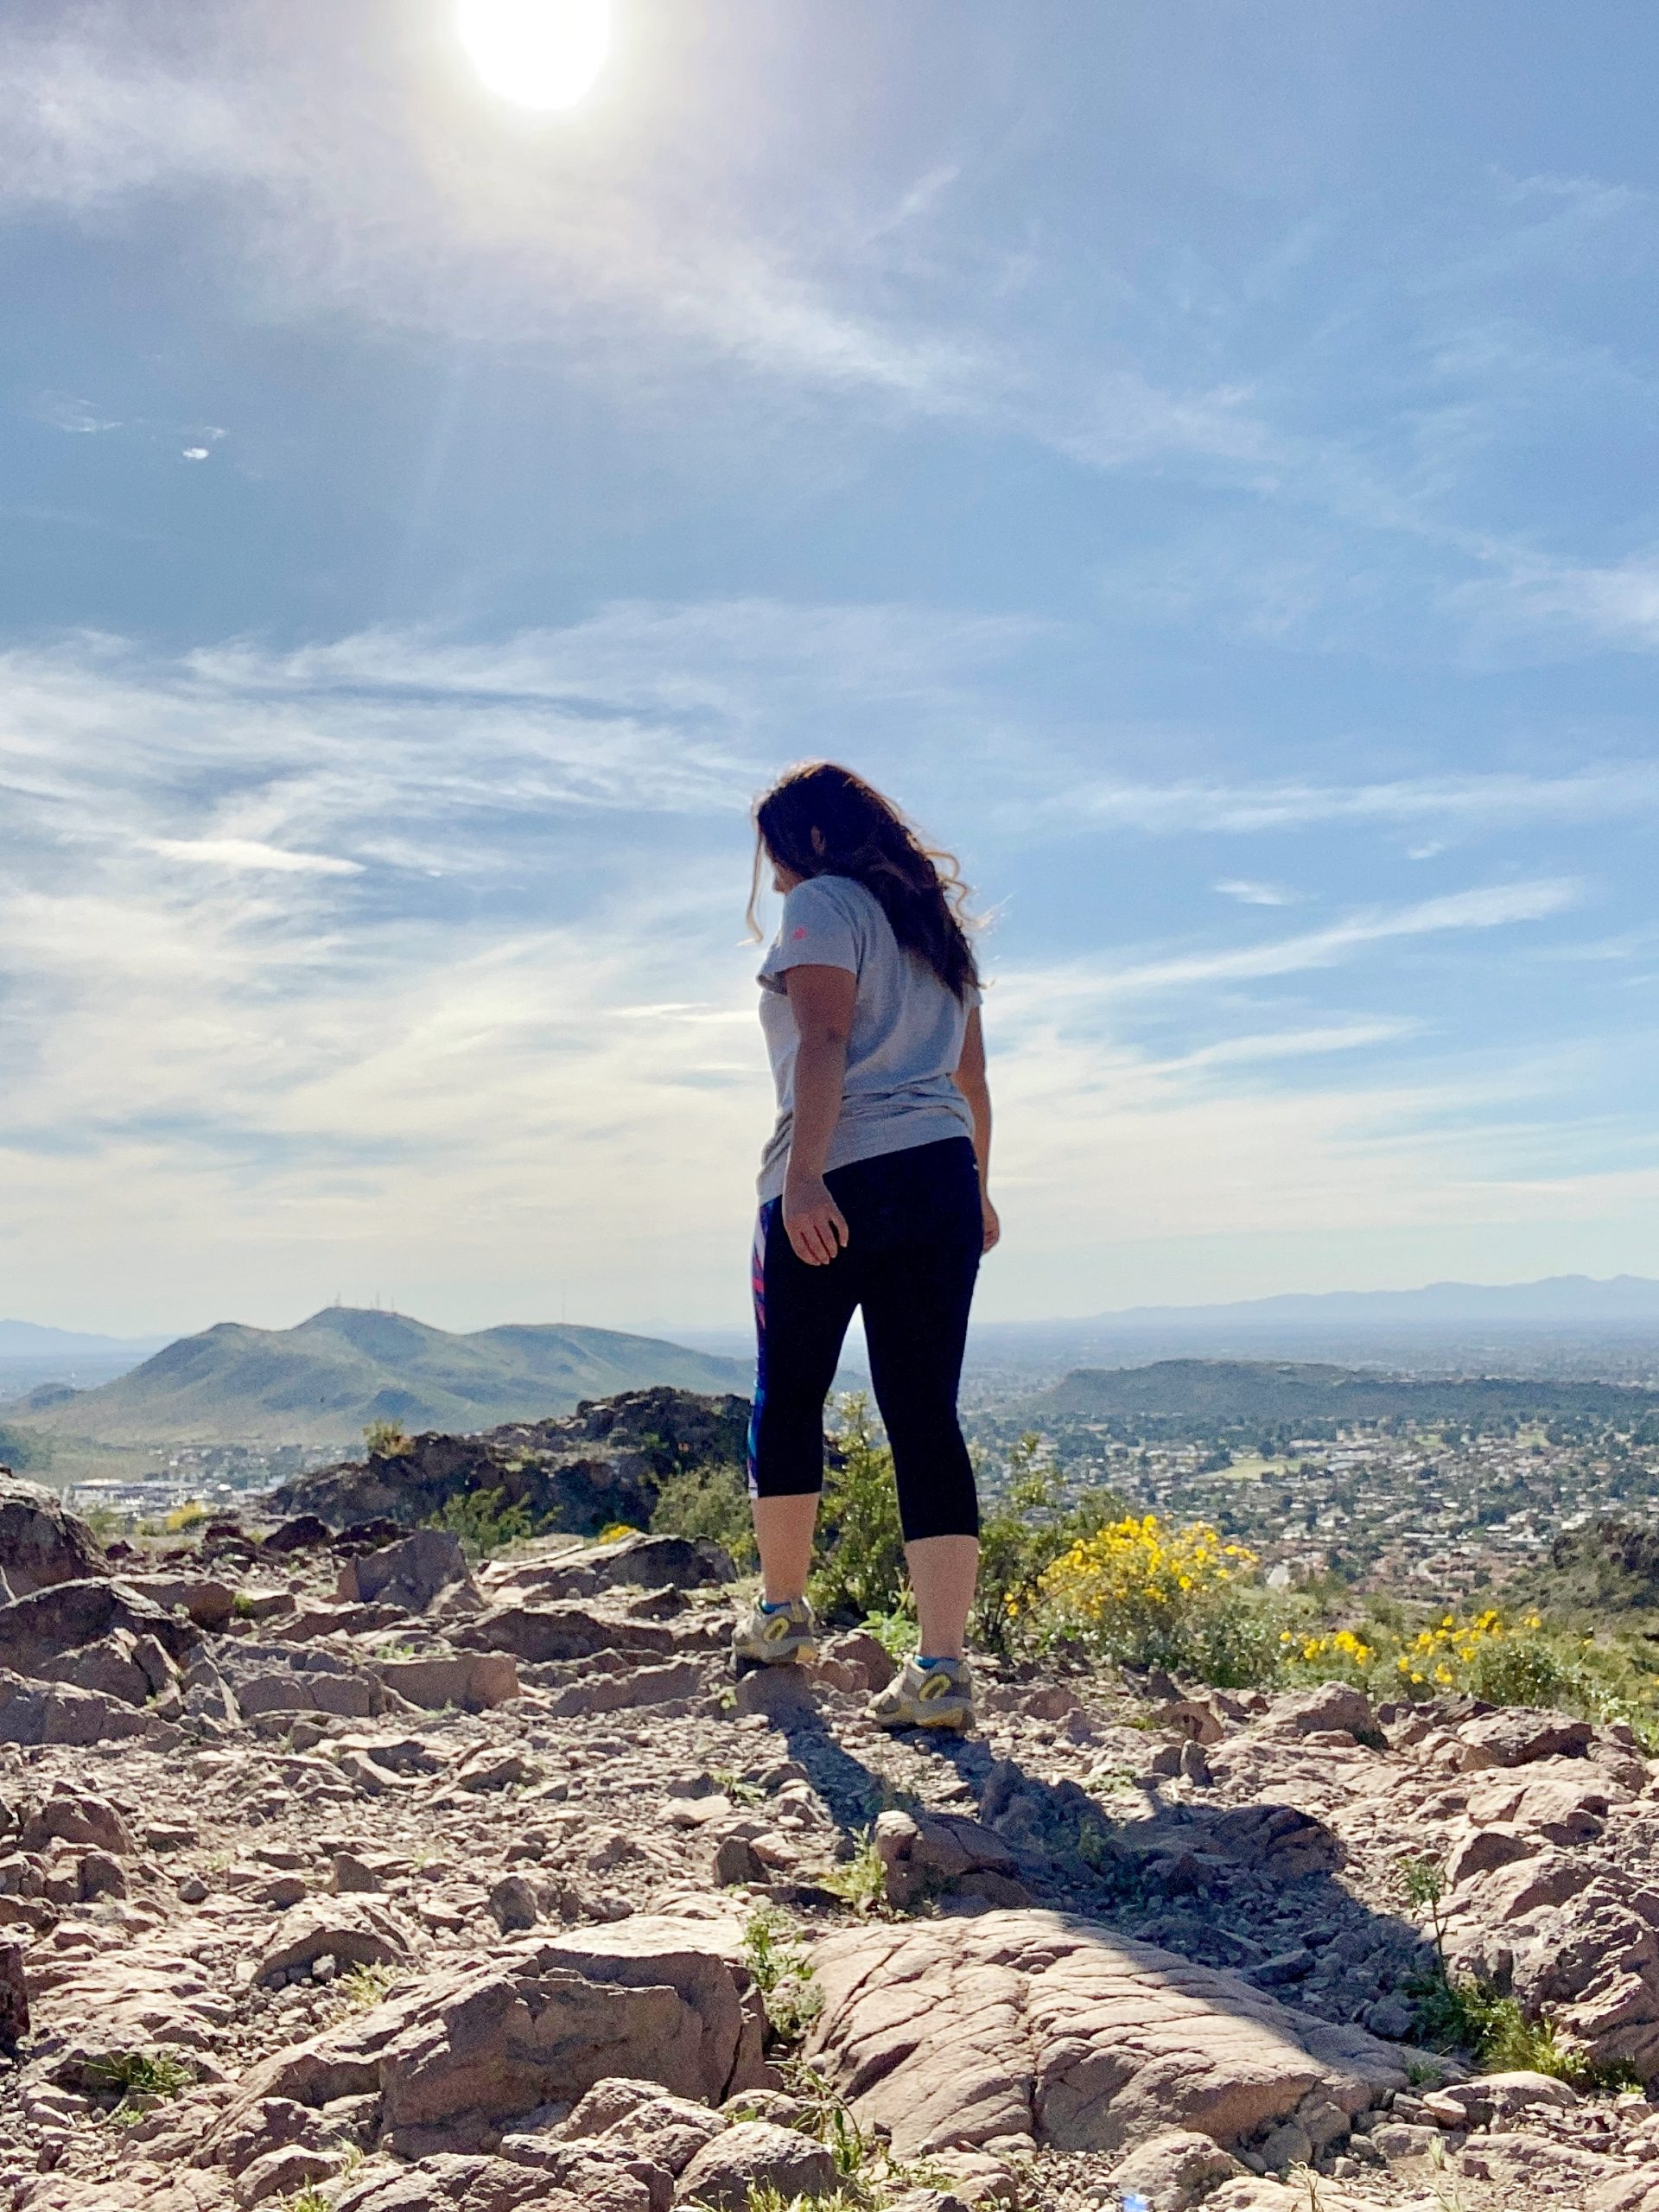 6 Ways Your Body Can Change From Hiking